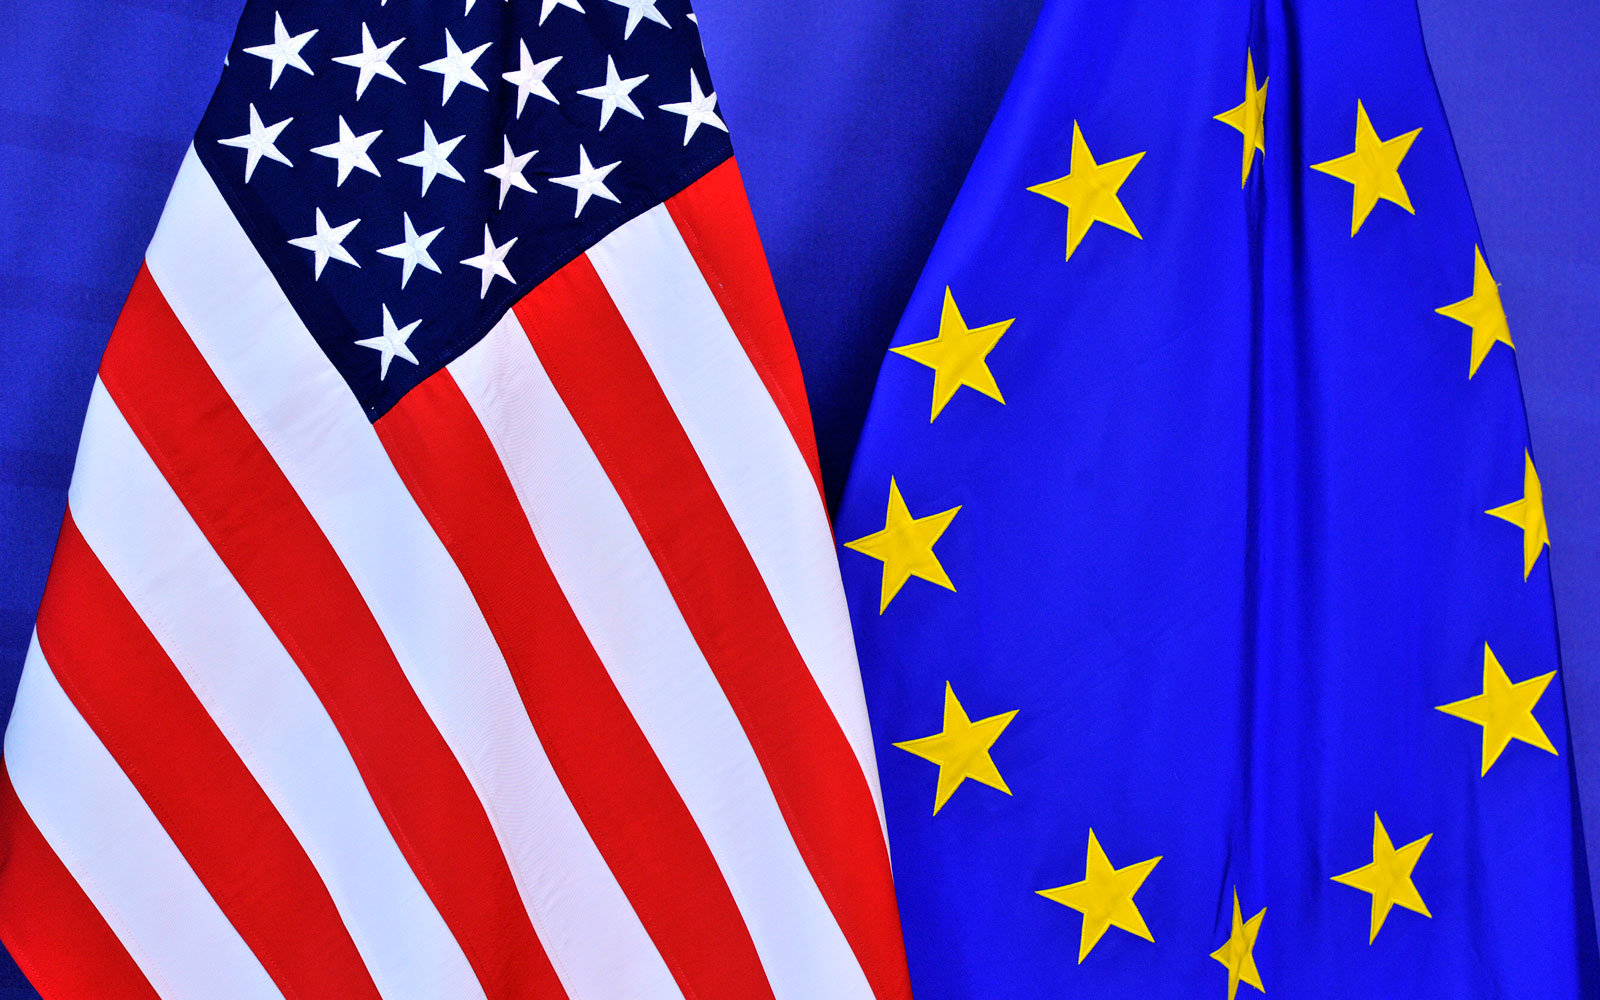 U.S. EU flags